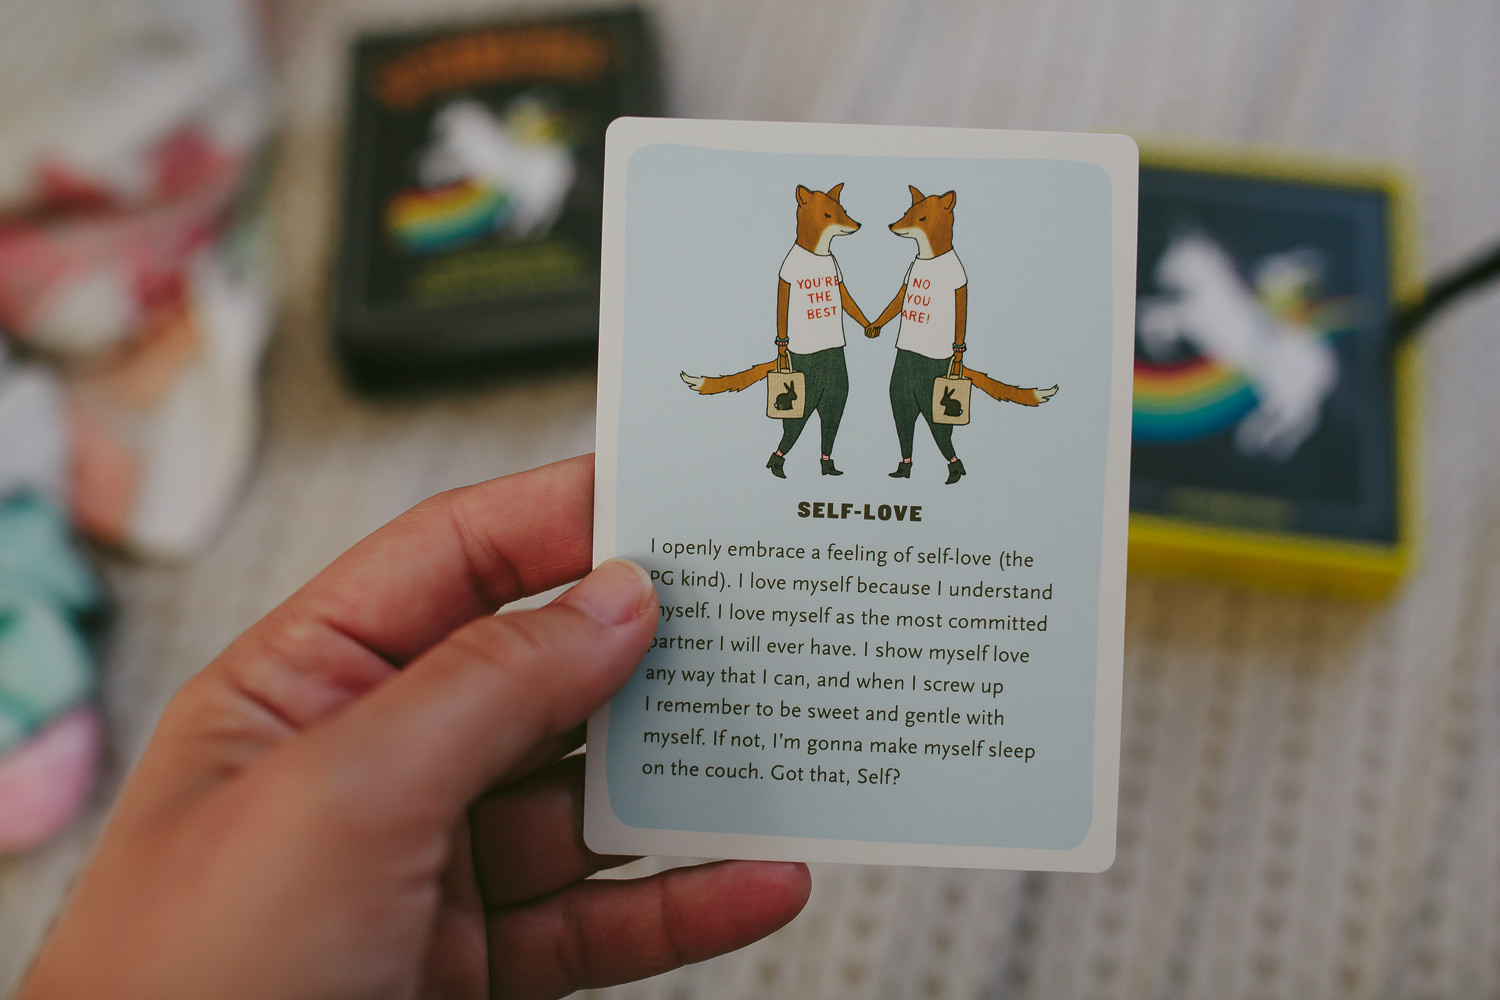 every day i pull a card. what do i need to know for today? what are your morning rituals?